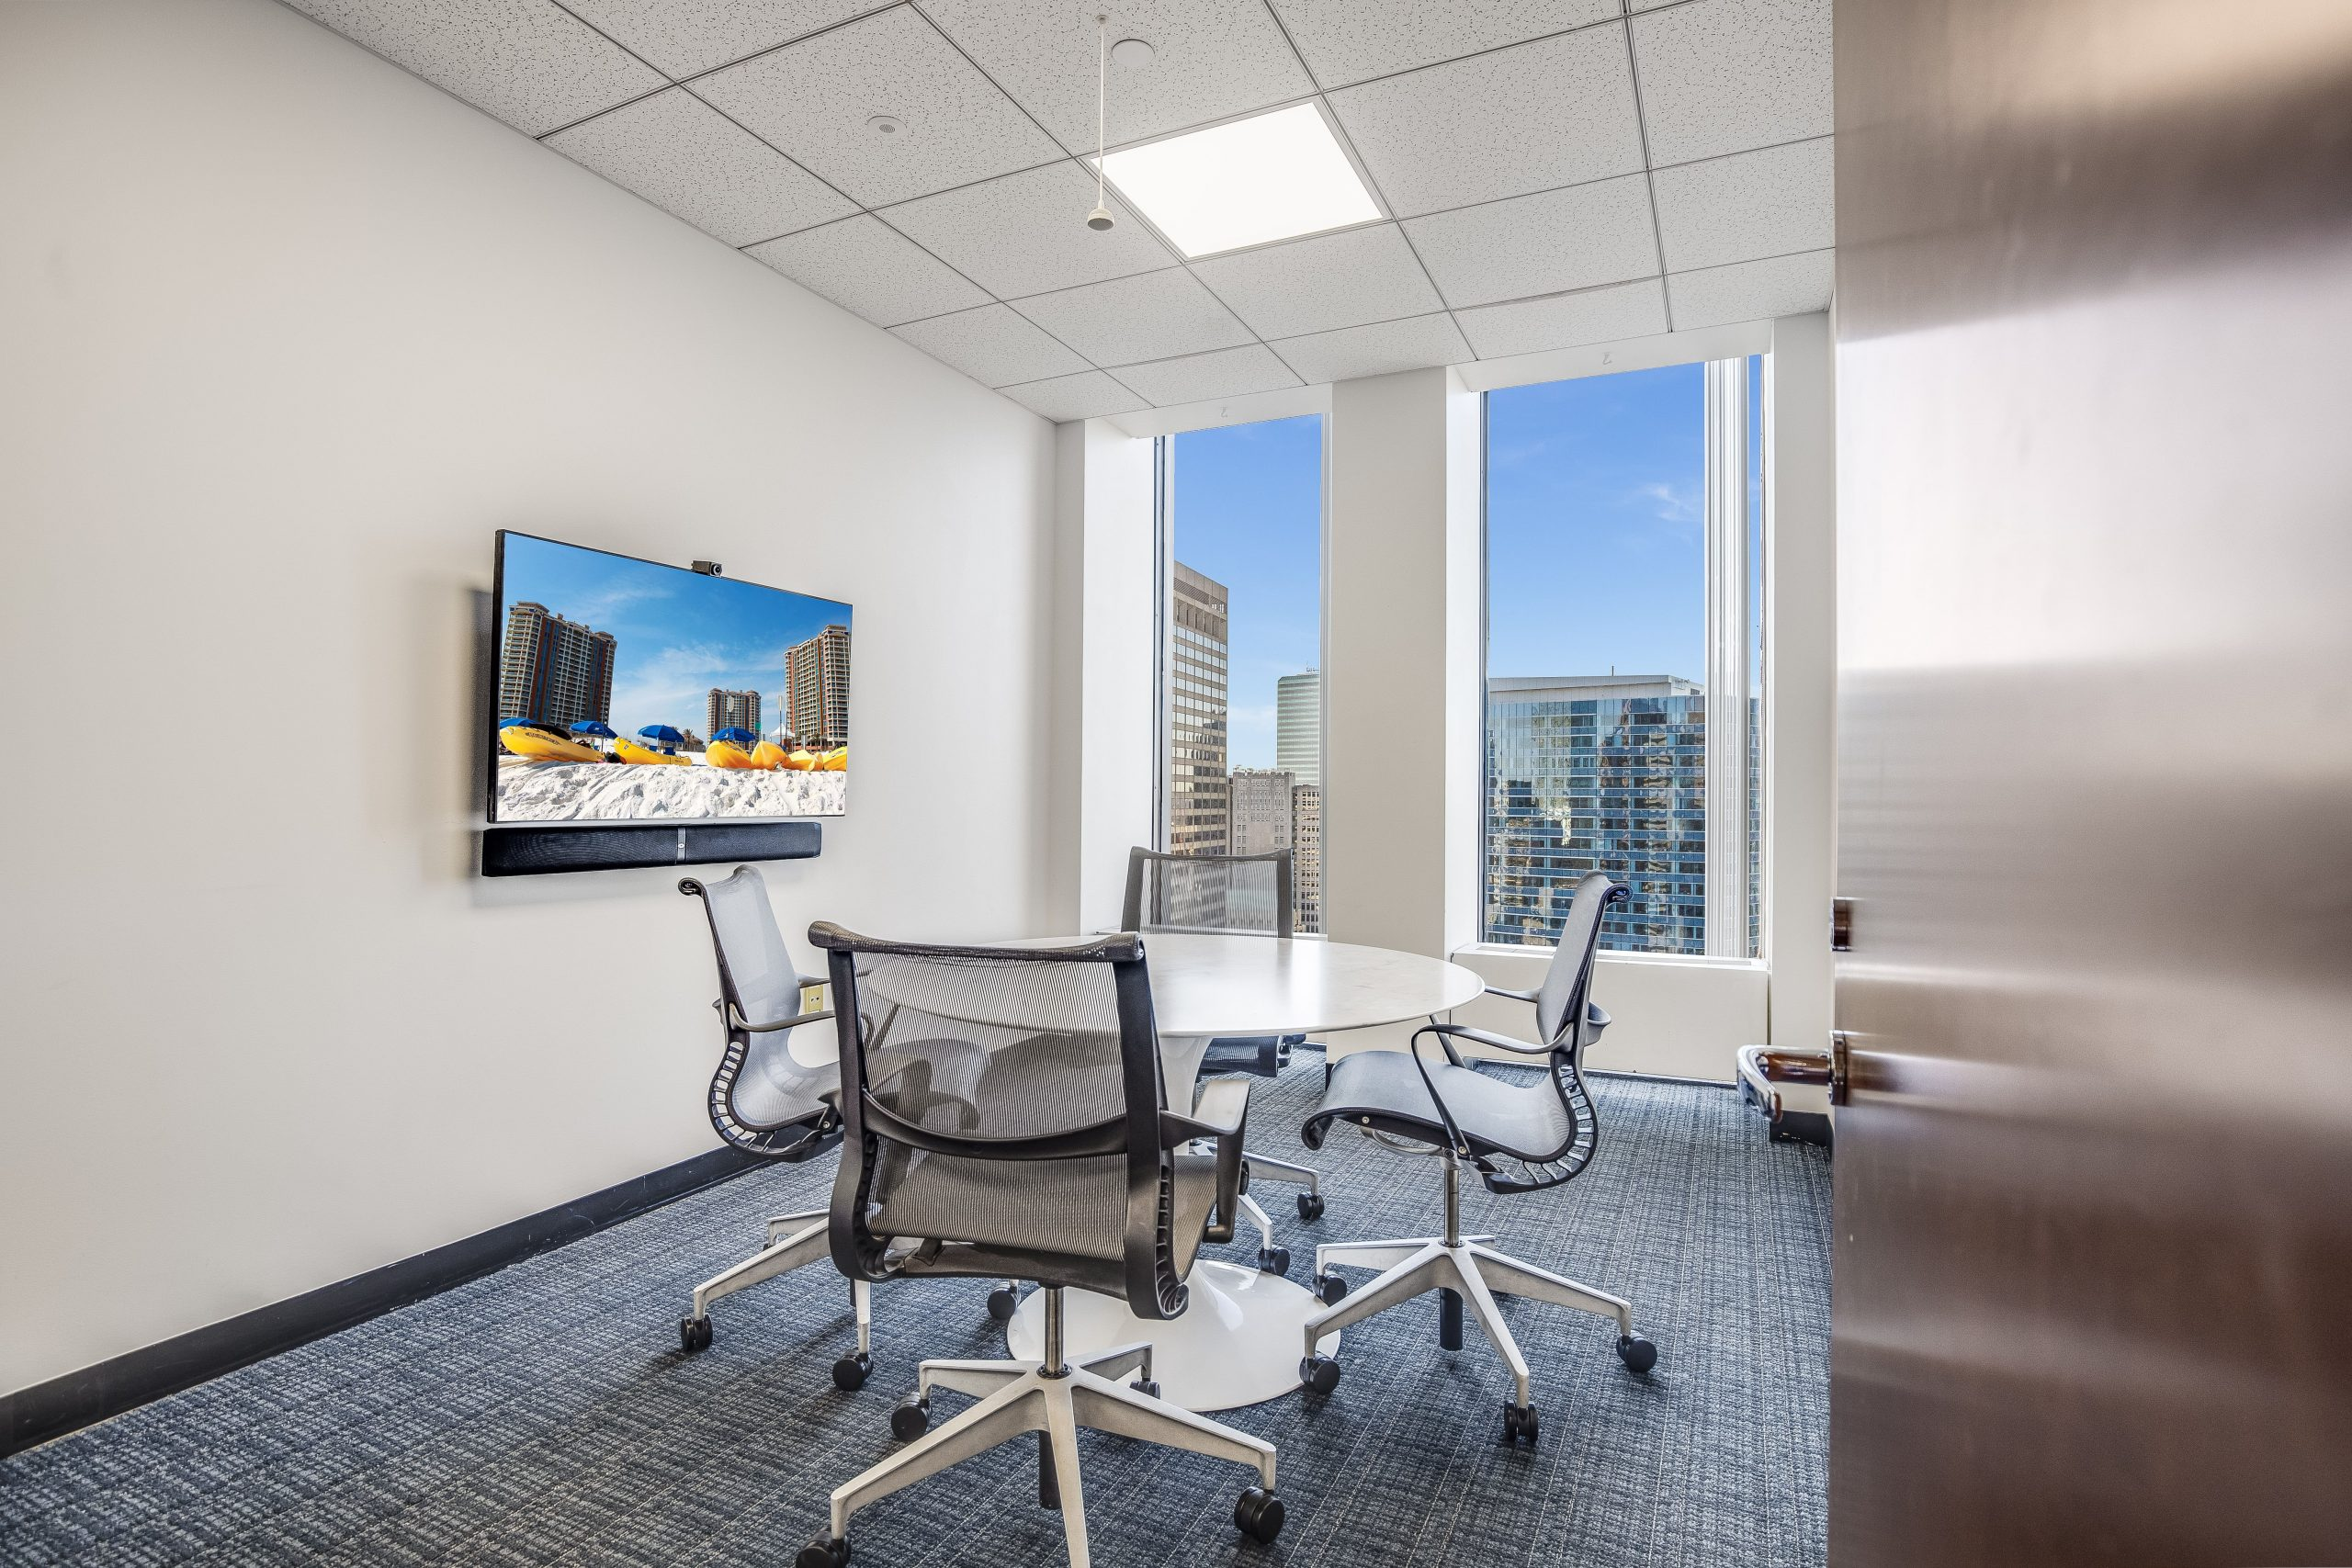 26 floor meeting room views in Boston